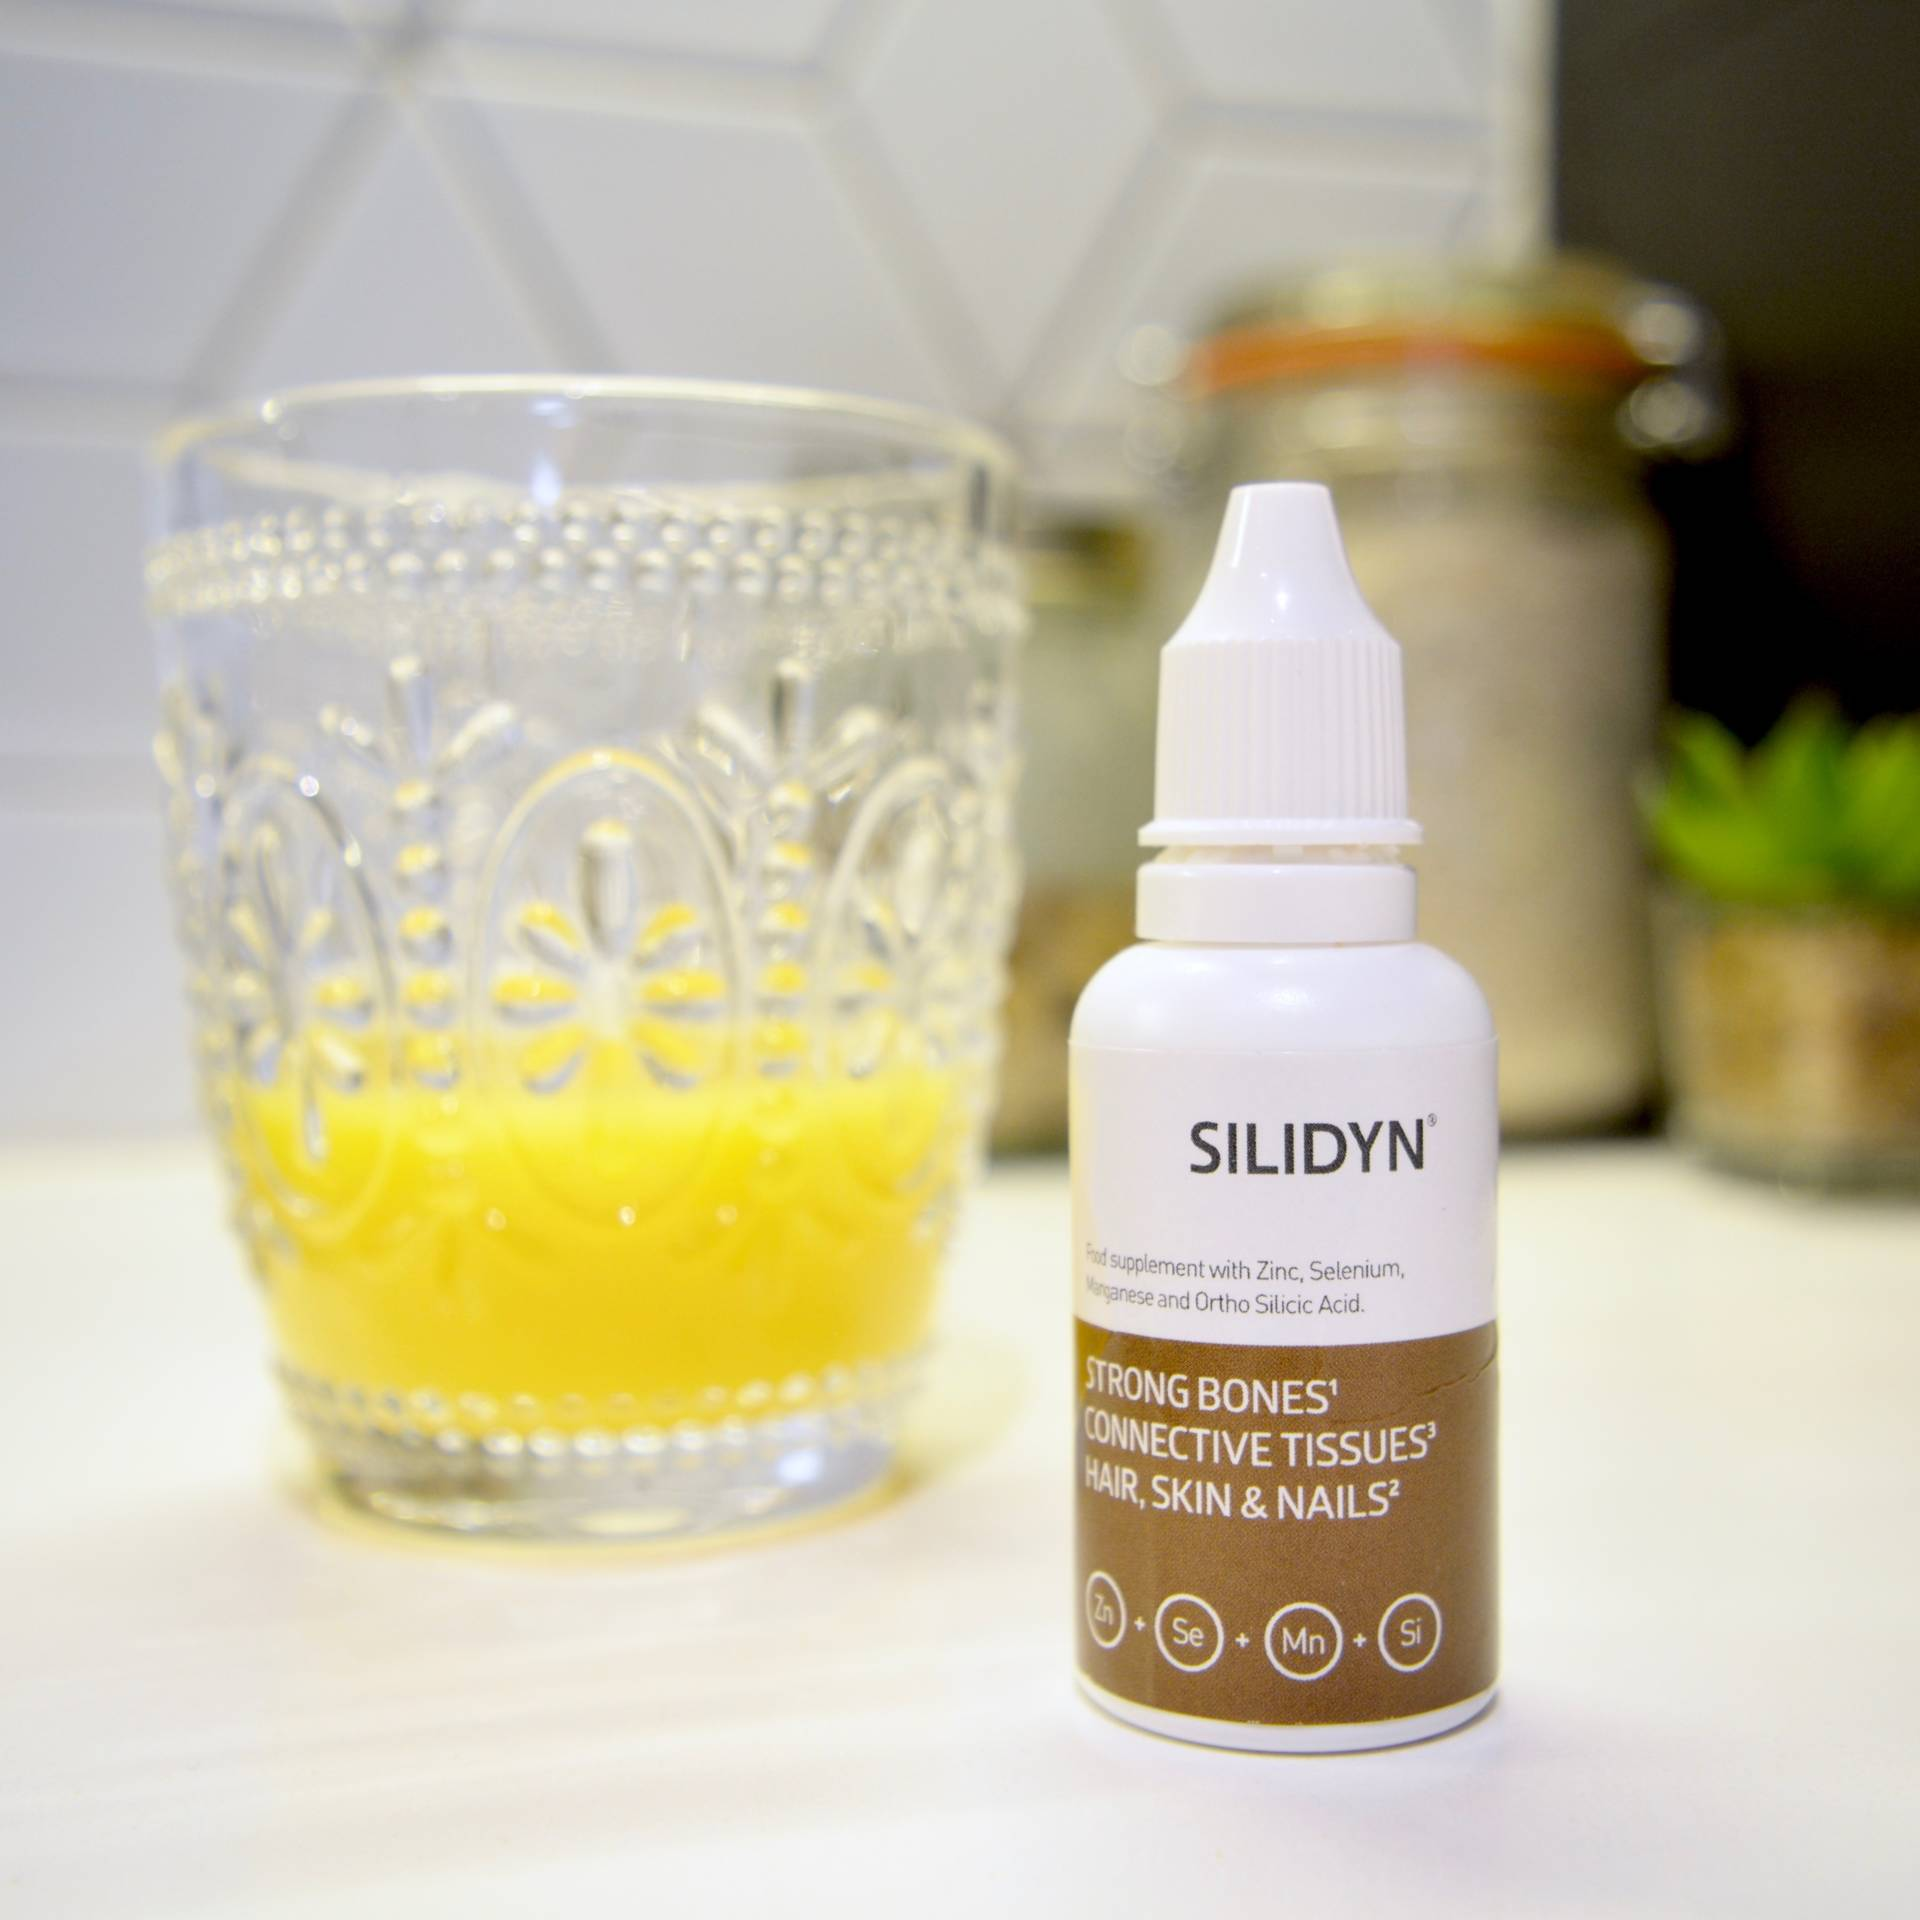 Silidyn Rejuvenate Review: A Liquid Supplement For Inner and Outer Beauty